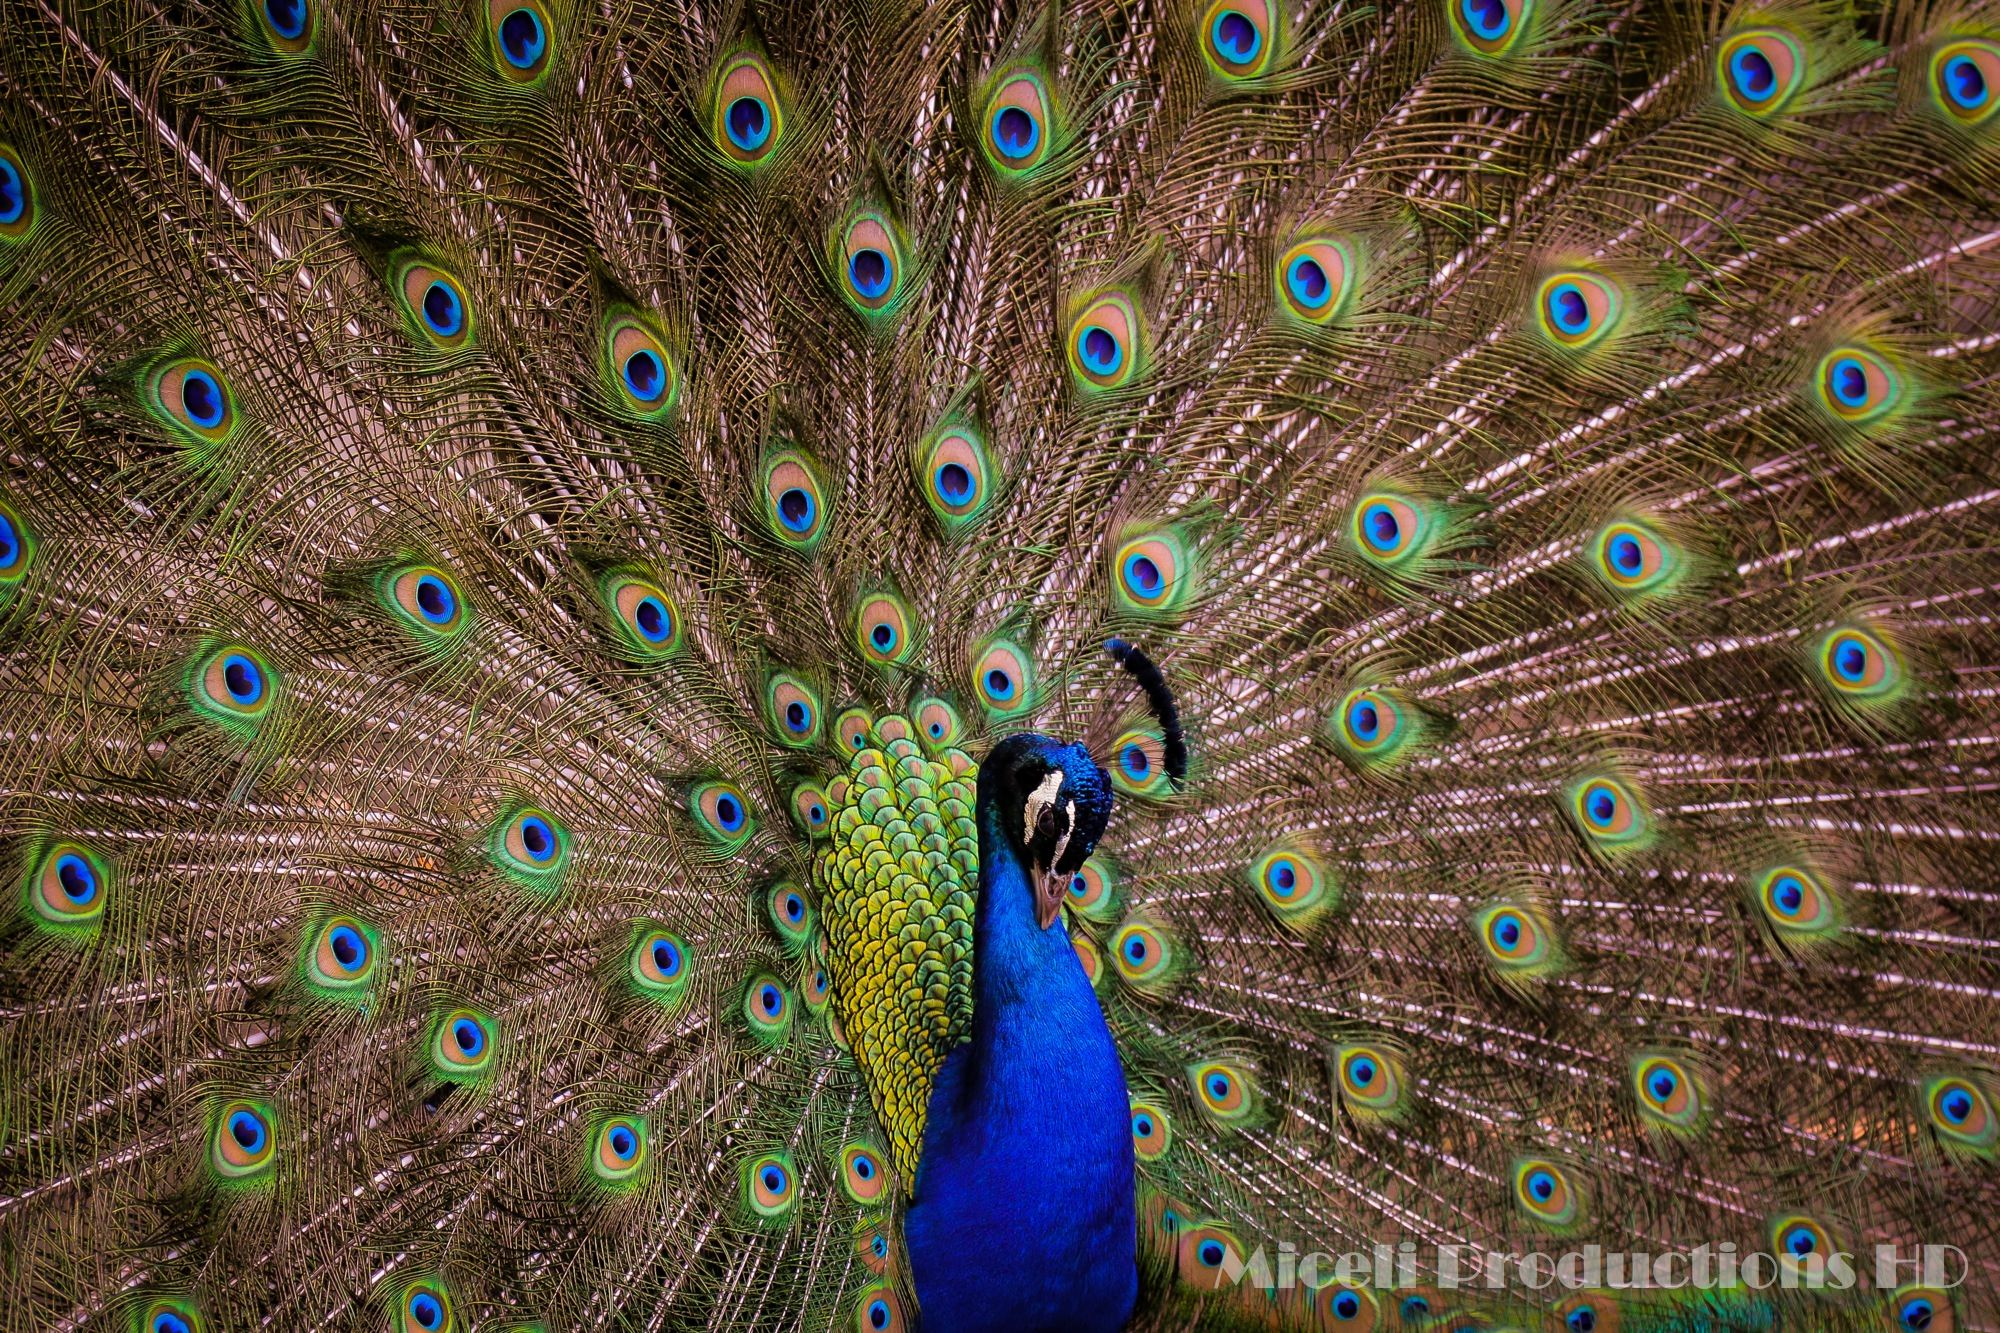 Bronx Zoo New York, Photography by Miceli Productions